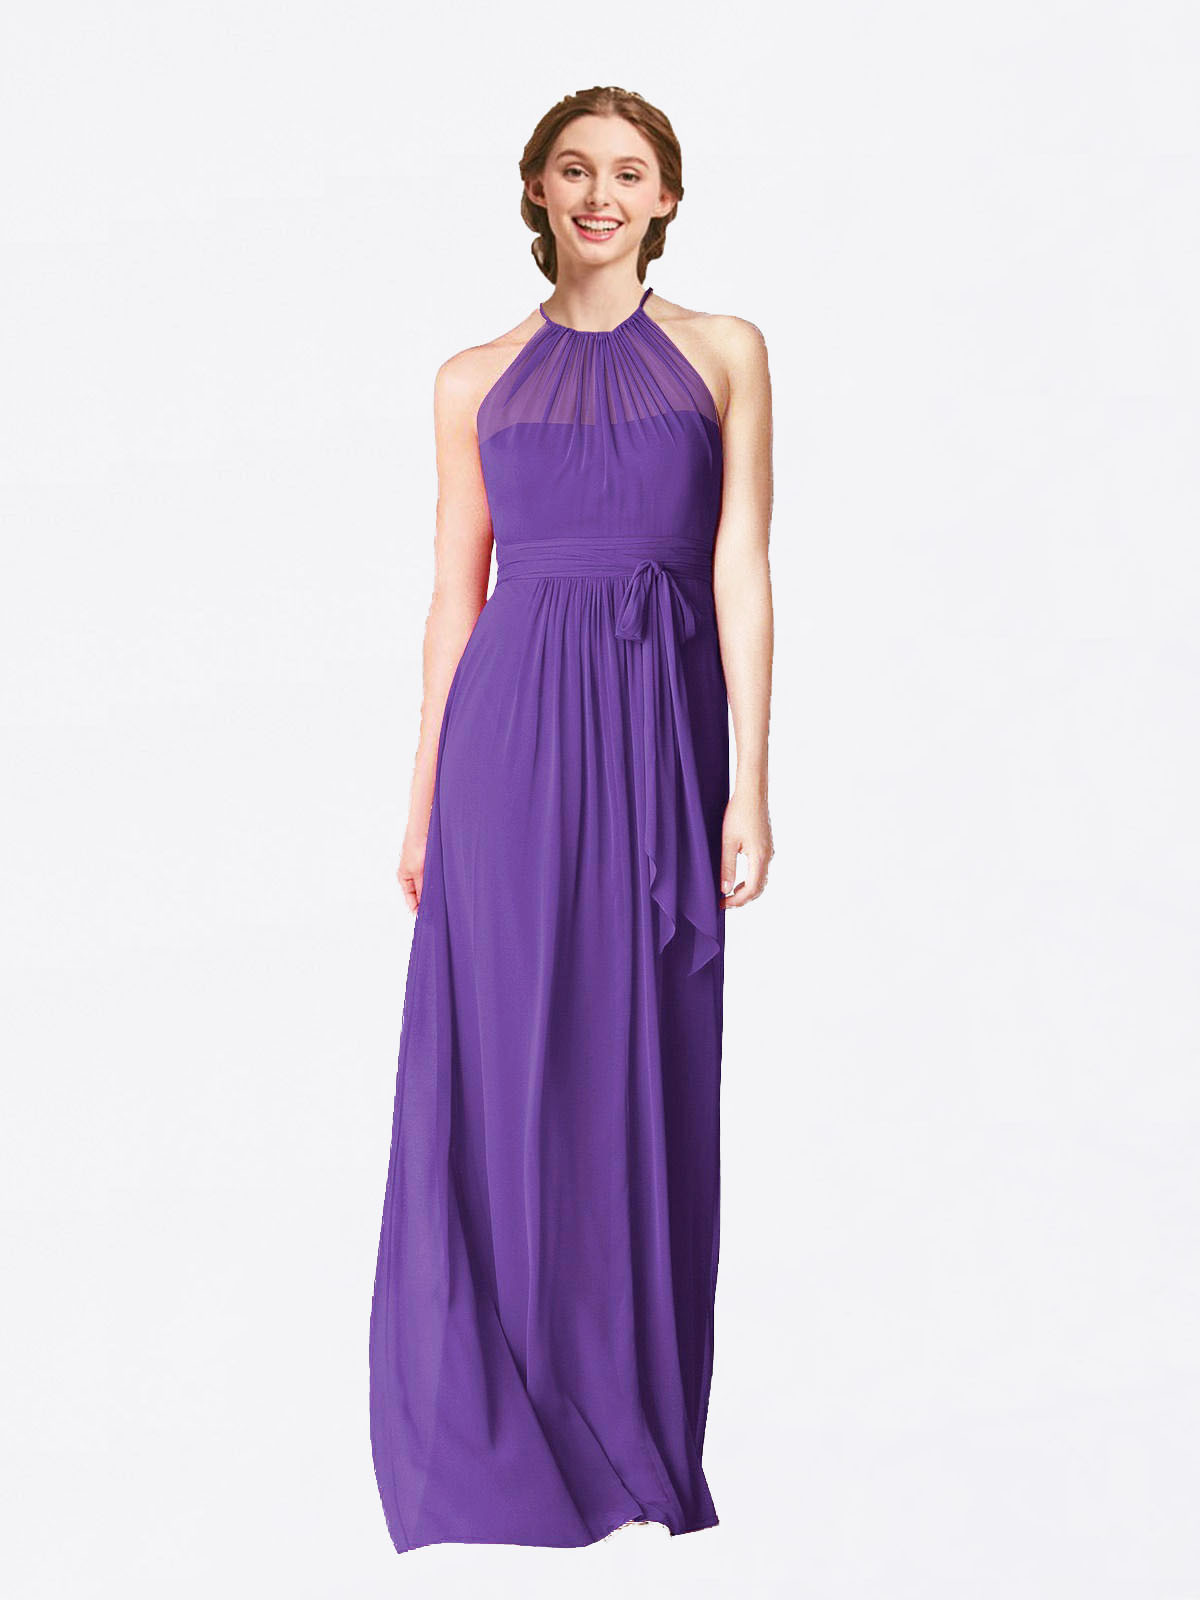 Long A-Line Halter Sleeveless Purple Chiffon Bridesmaid Dress Laura